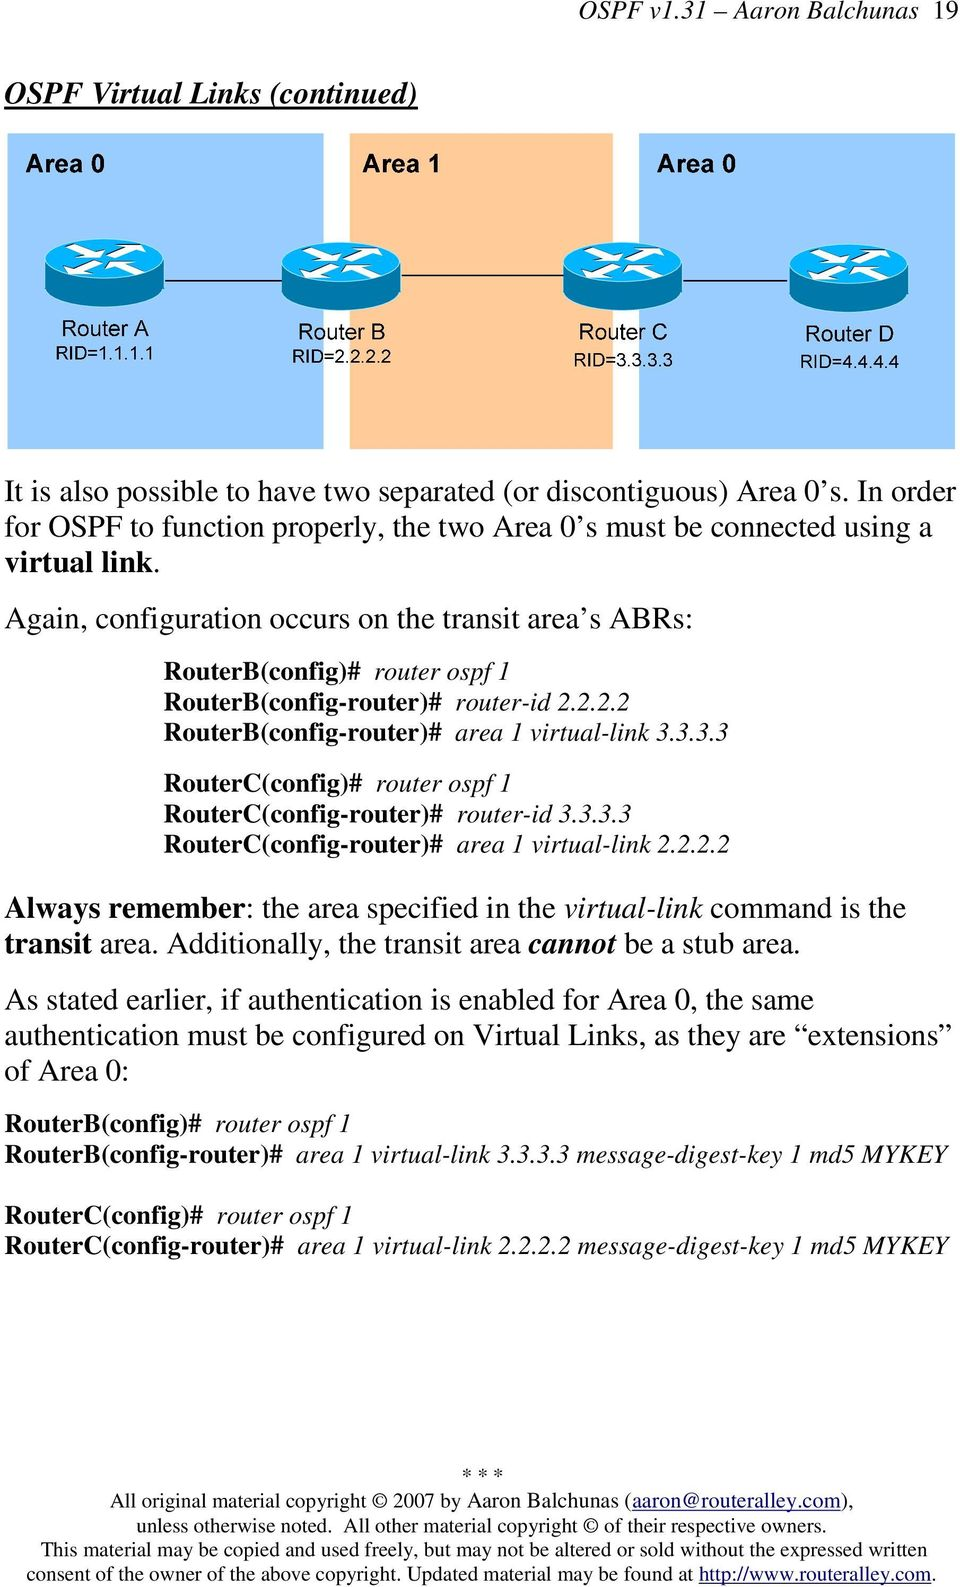 Again, configuration occurs on the transit area s ABRs: RouterB(config)# router ospf 1 RouterB(config-router)# router-id 2.2.2.2 RouterB(config-router)# area 1 virtual-link 3.